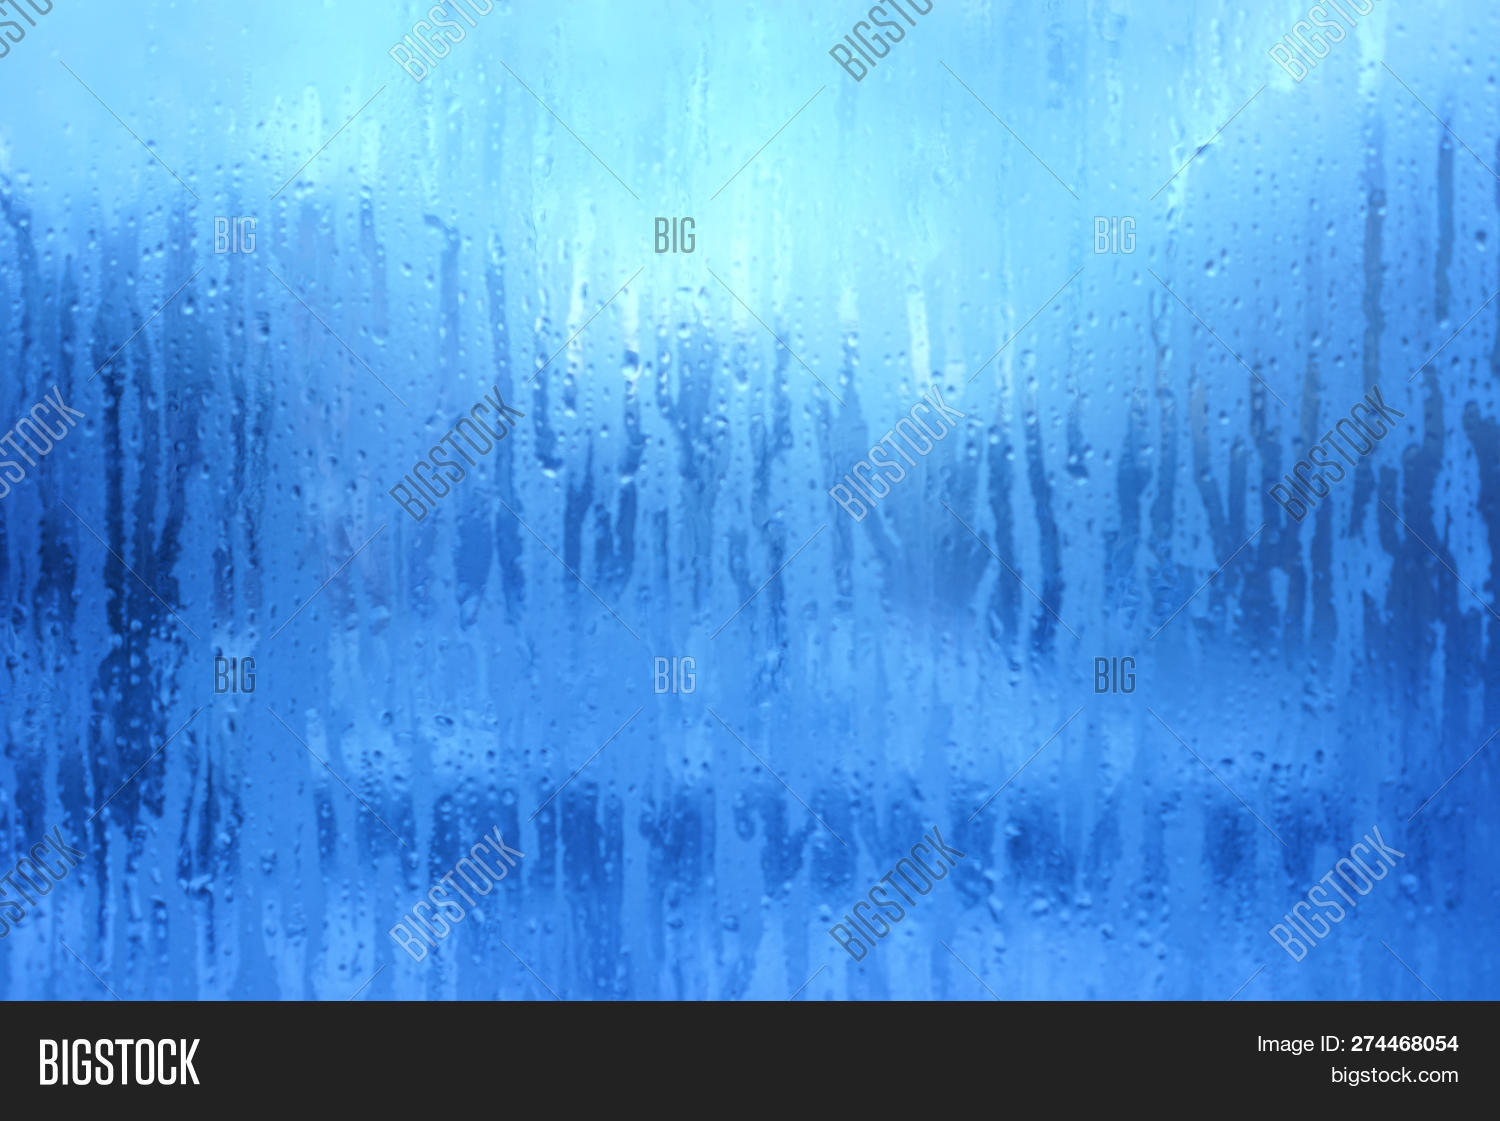 abstract,blue,christmas,christmas background,christmas card,christmas ornaments,cold,cool,cooler,crystal,effect,freeze,freezer,frost,frost pattern,frost texture,frosted glass,frosted glass background,frosted glass window,frosted window,frosty,frosty window,frozen background,frozen window,glacial,glacier,glass,glitter,hard,hoarfrost,ice,ice background,ice texture,icy,low temperature,north,polar,refrigeration,rime,snow,winter,winter ice pattern,winter pattern,winter wonderland,wintertime,xmas